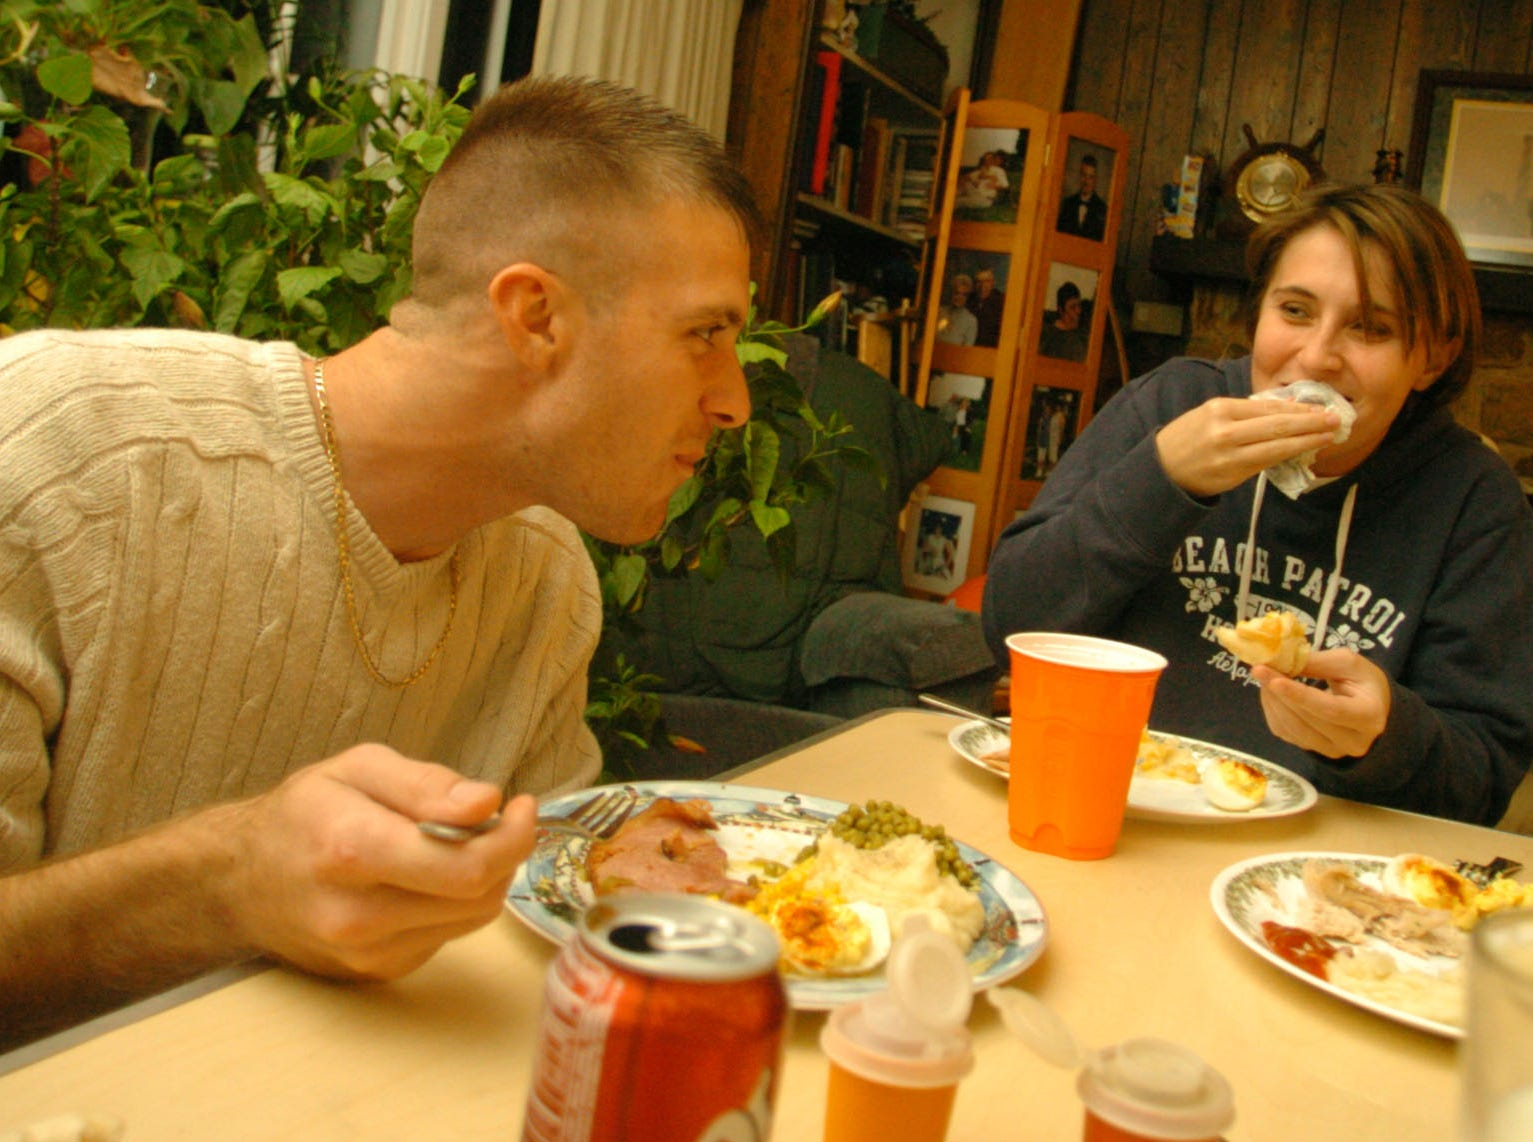 Marine Sgt. Joey Valentine, left, having Thanksgiving dinner with girlfriend Misty Moore, center, and older brother Marine Sgt. Wayne Valentine. Joey has already been overseas and has returned, Wayne will be deployed in January. 2004